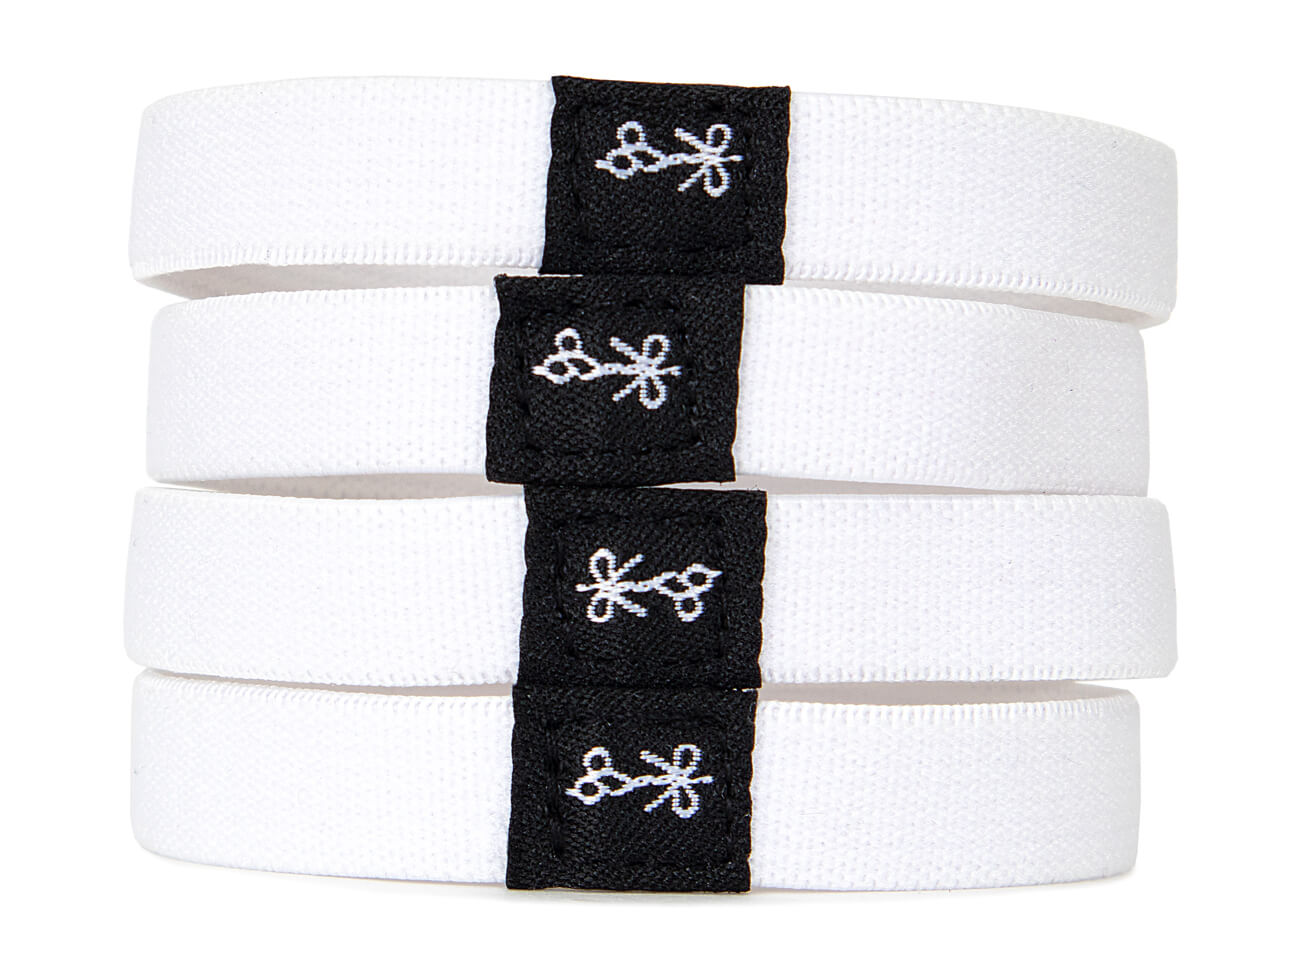 Hair Ties For Guys The White Ties